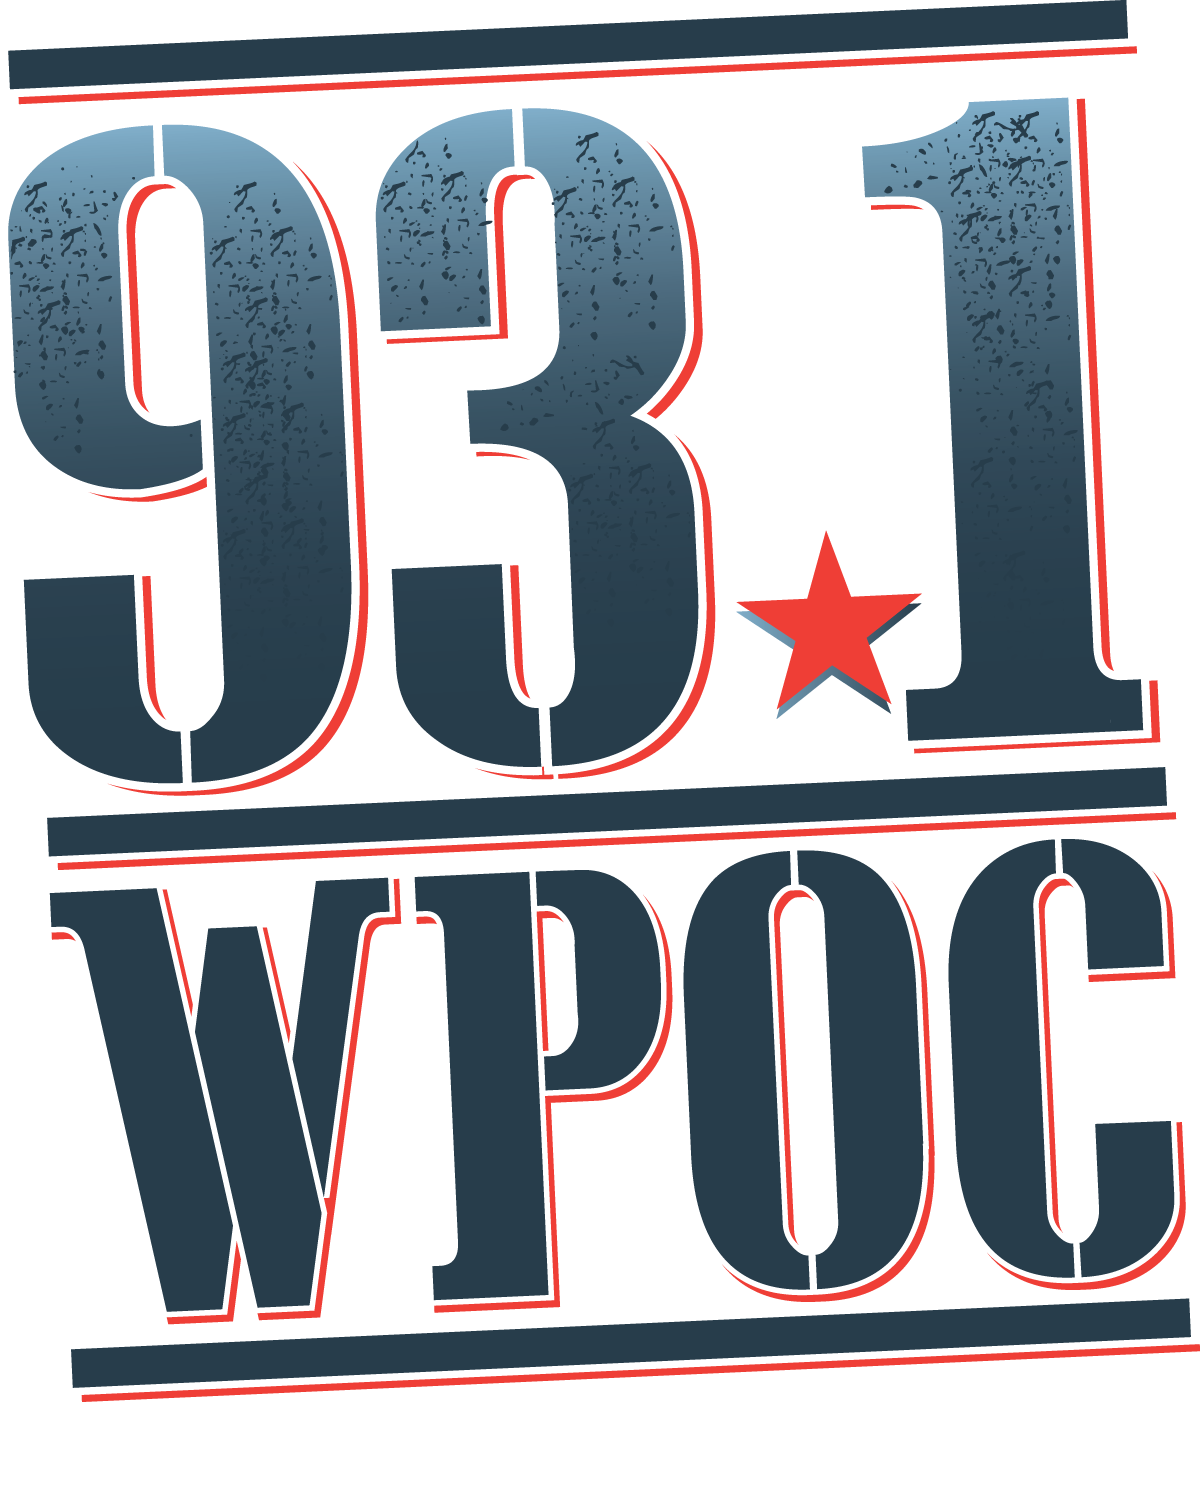 93 1 WPOC Contact Info: Number, Address, Advertising & More